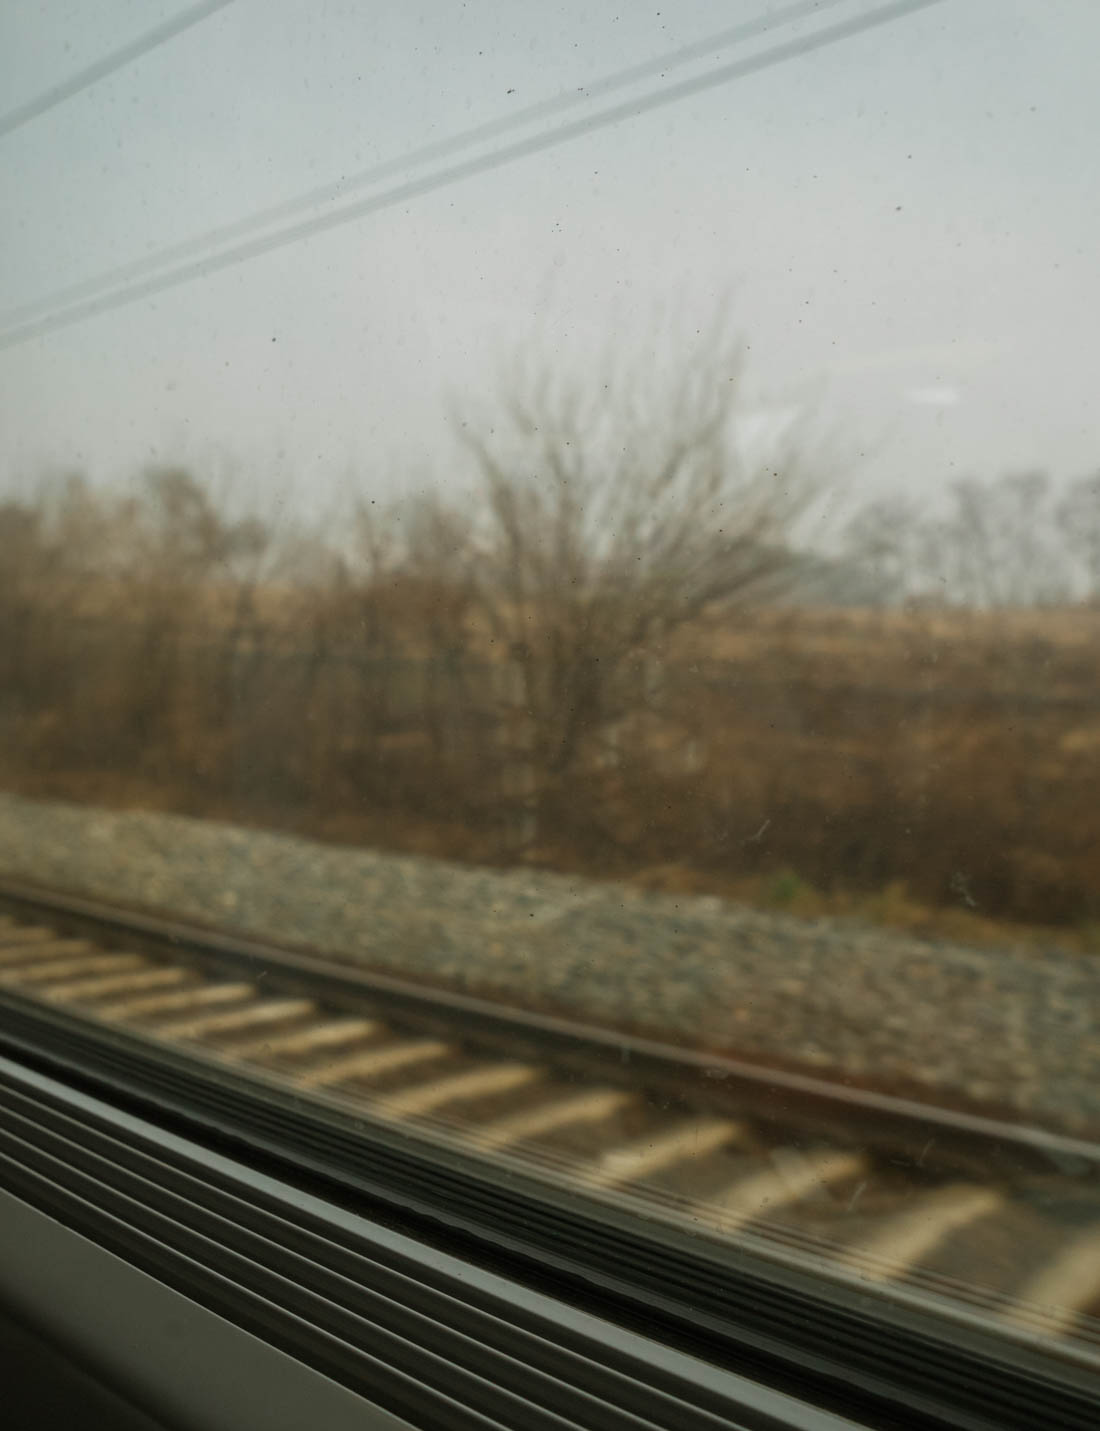 KTX Busan train window view